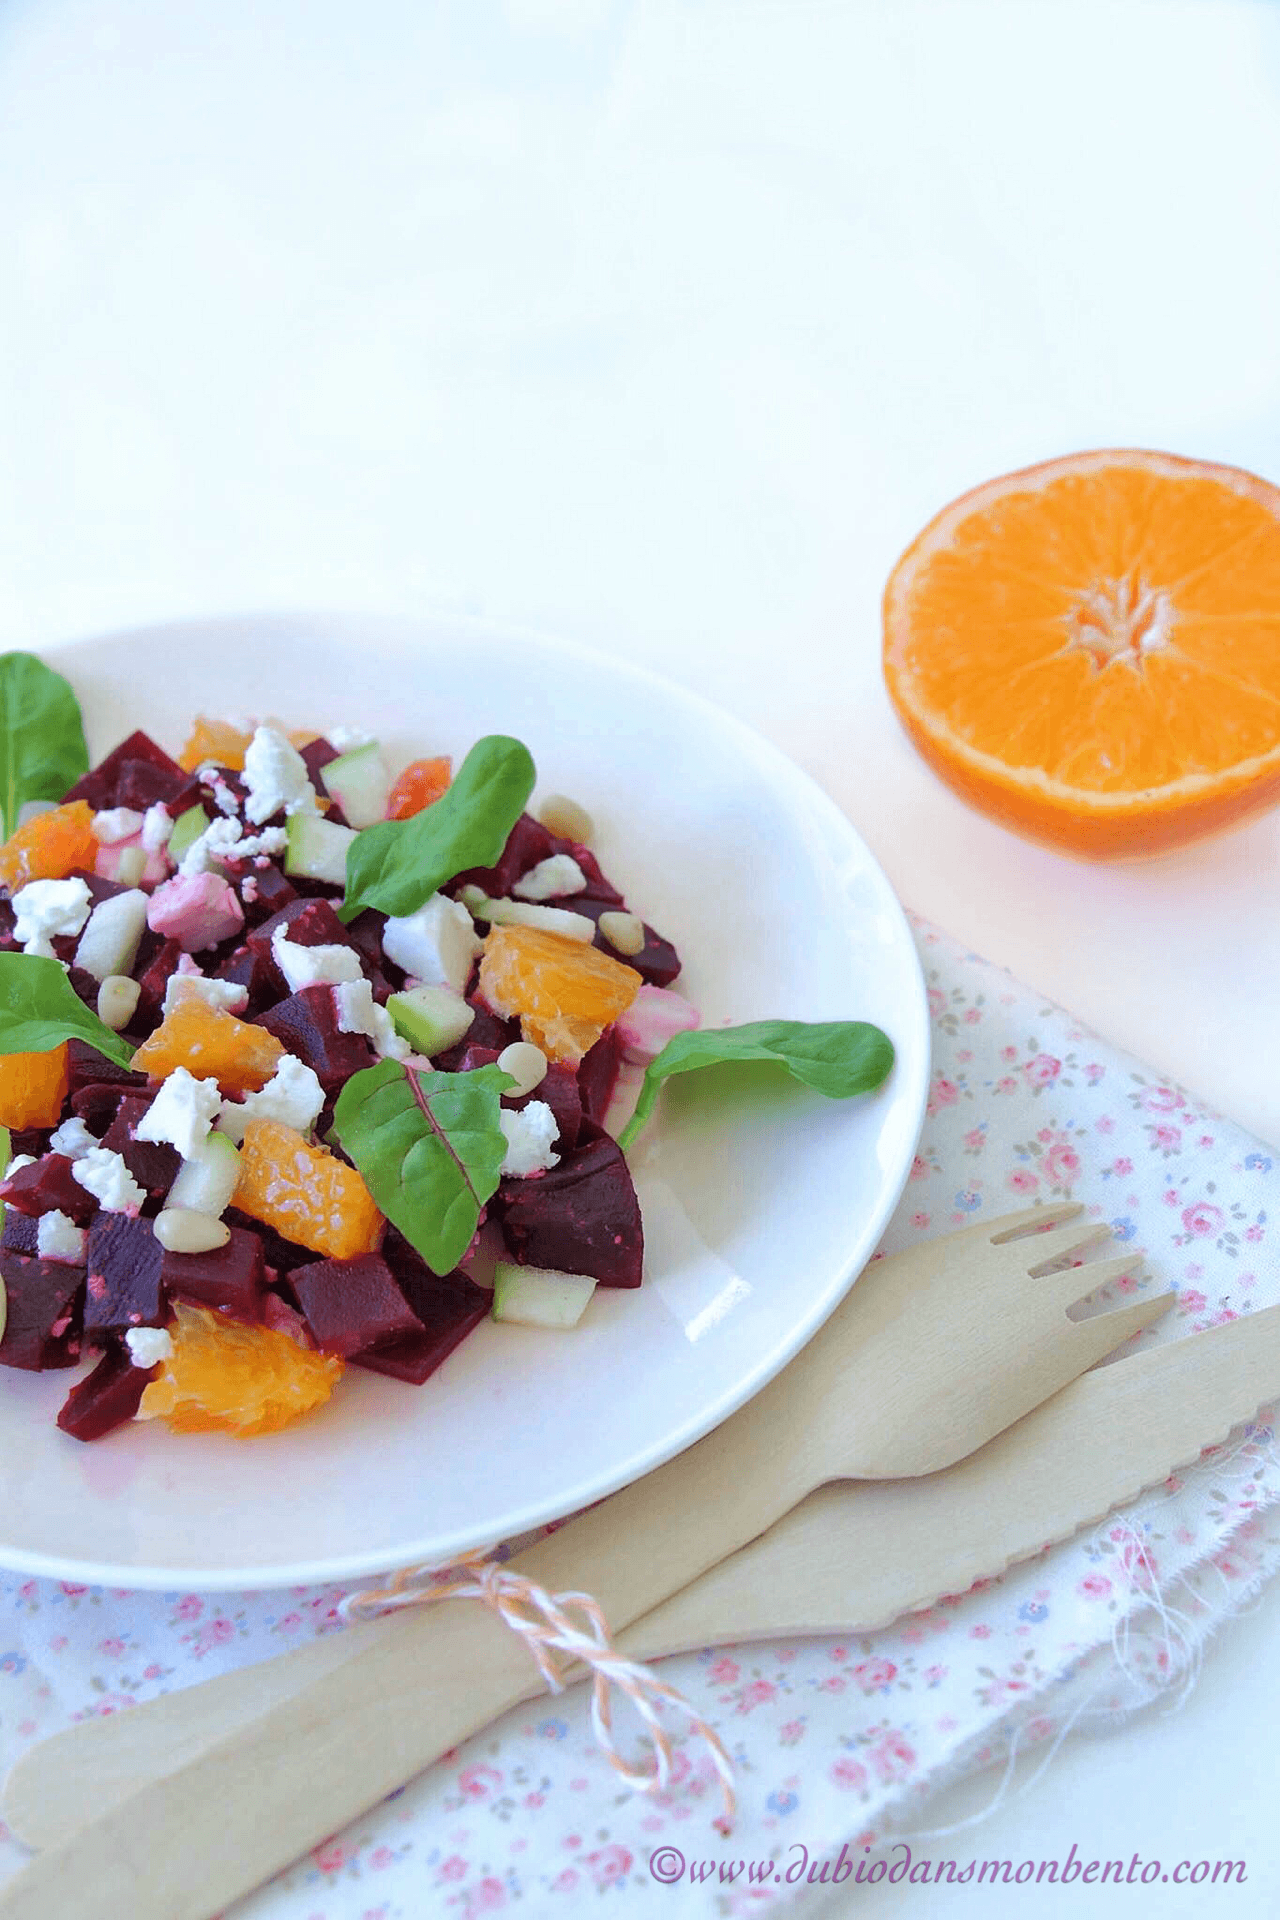 Salade de betterave orange pomme et feta